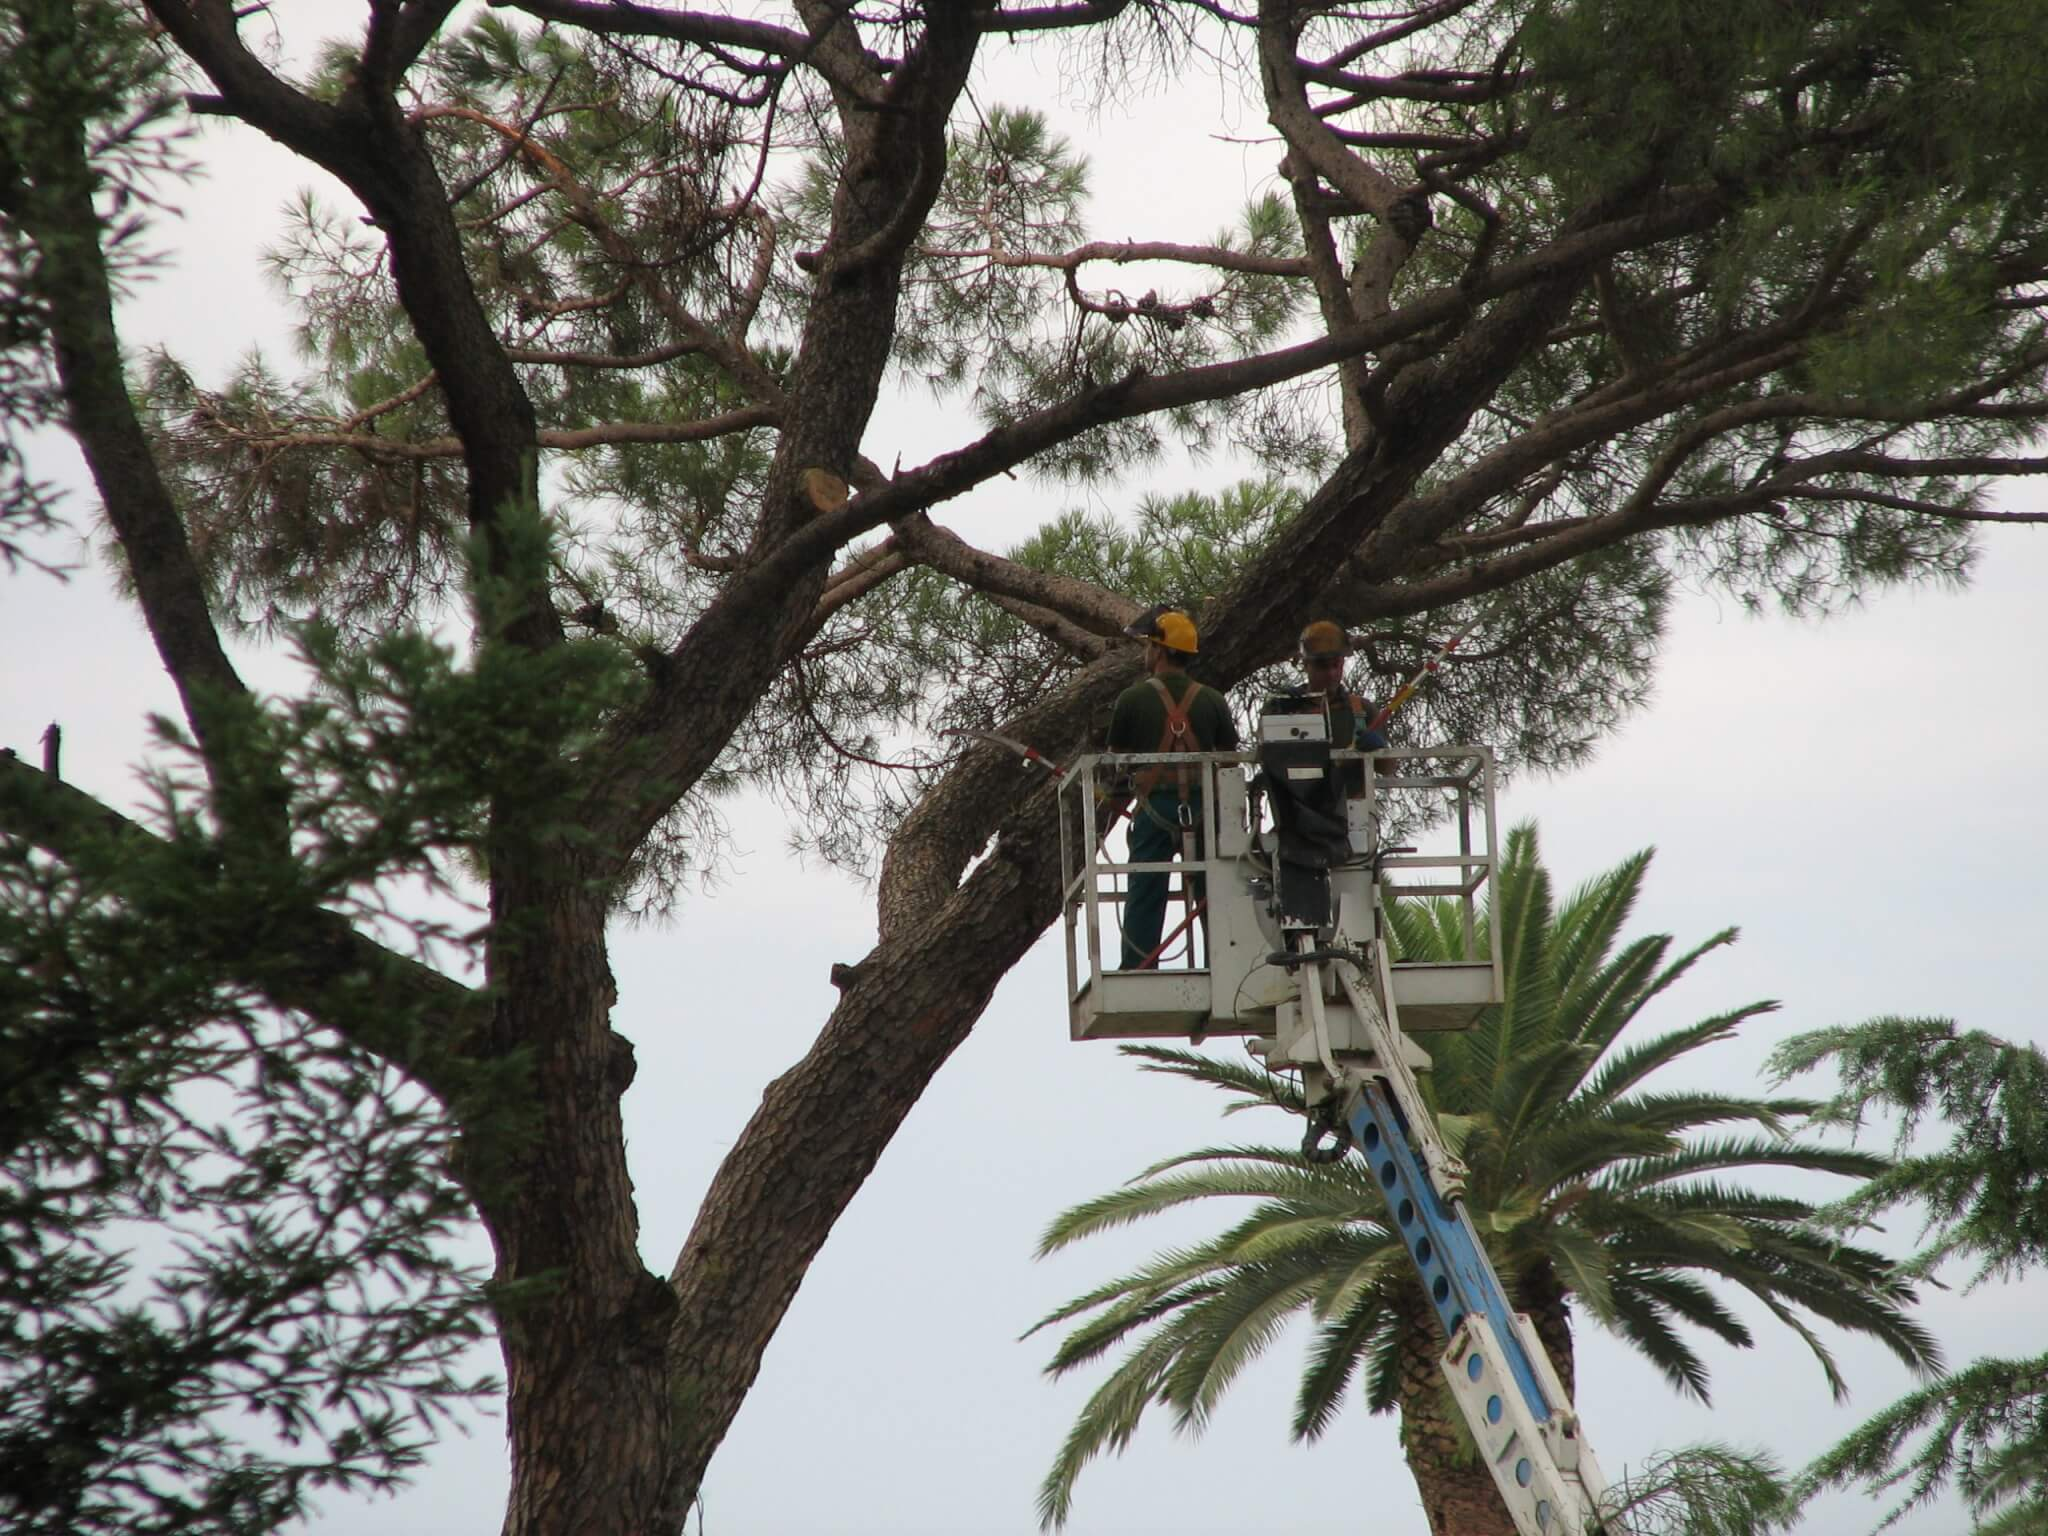 tree services gold coast image 151